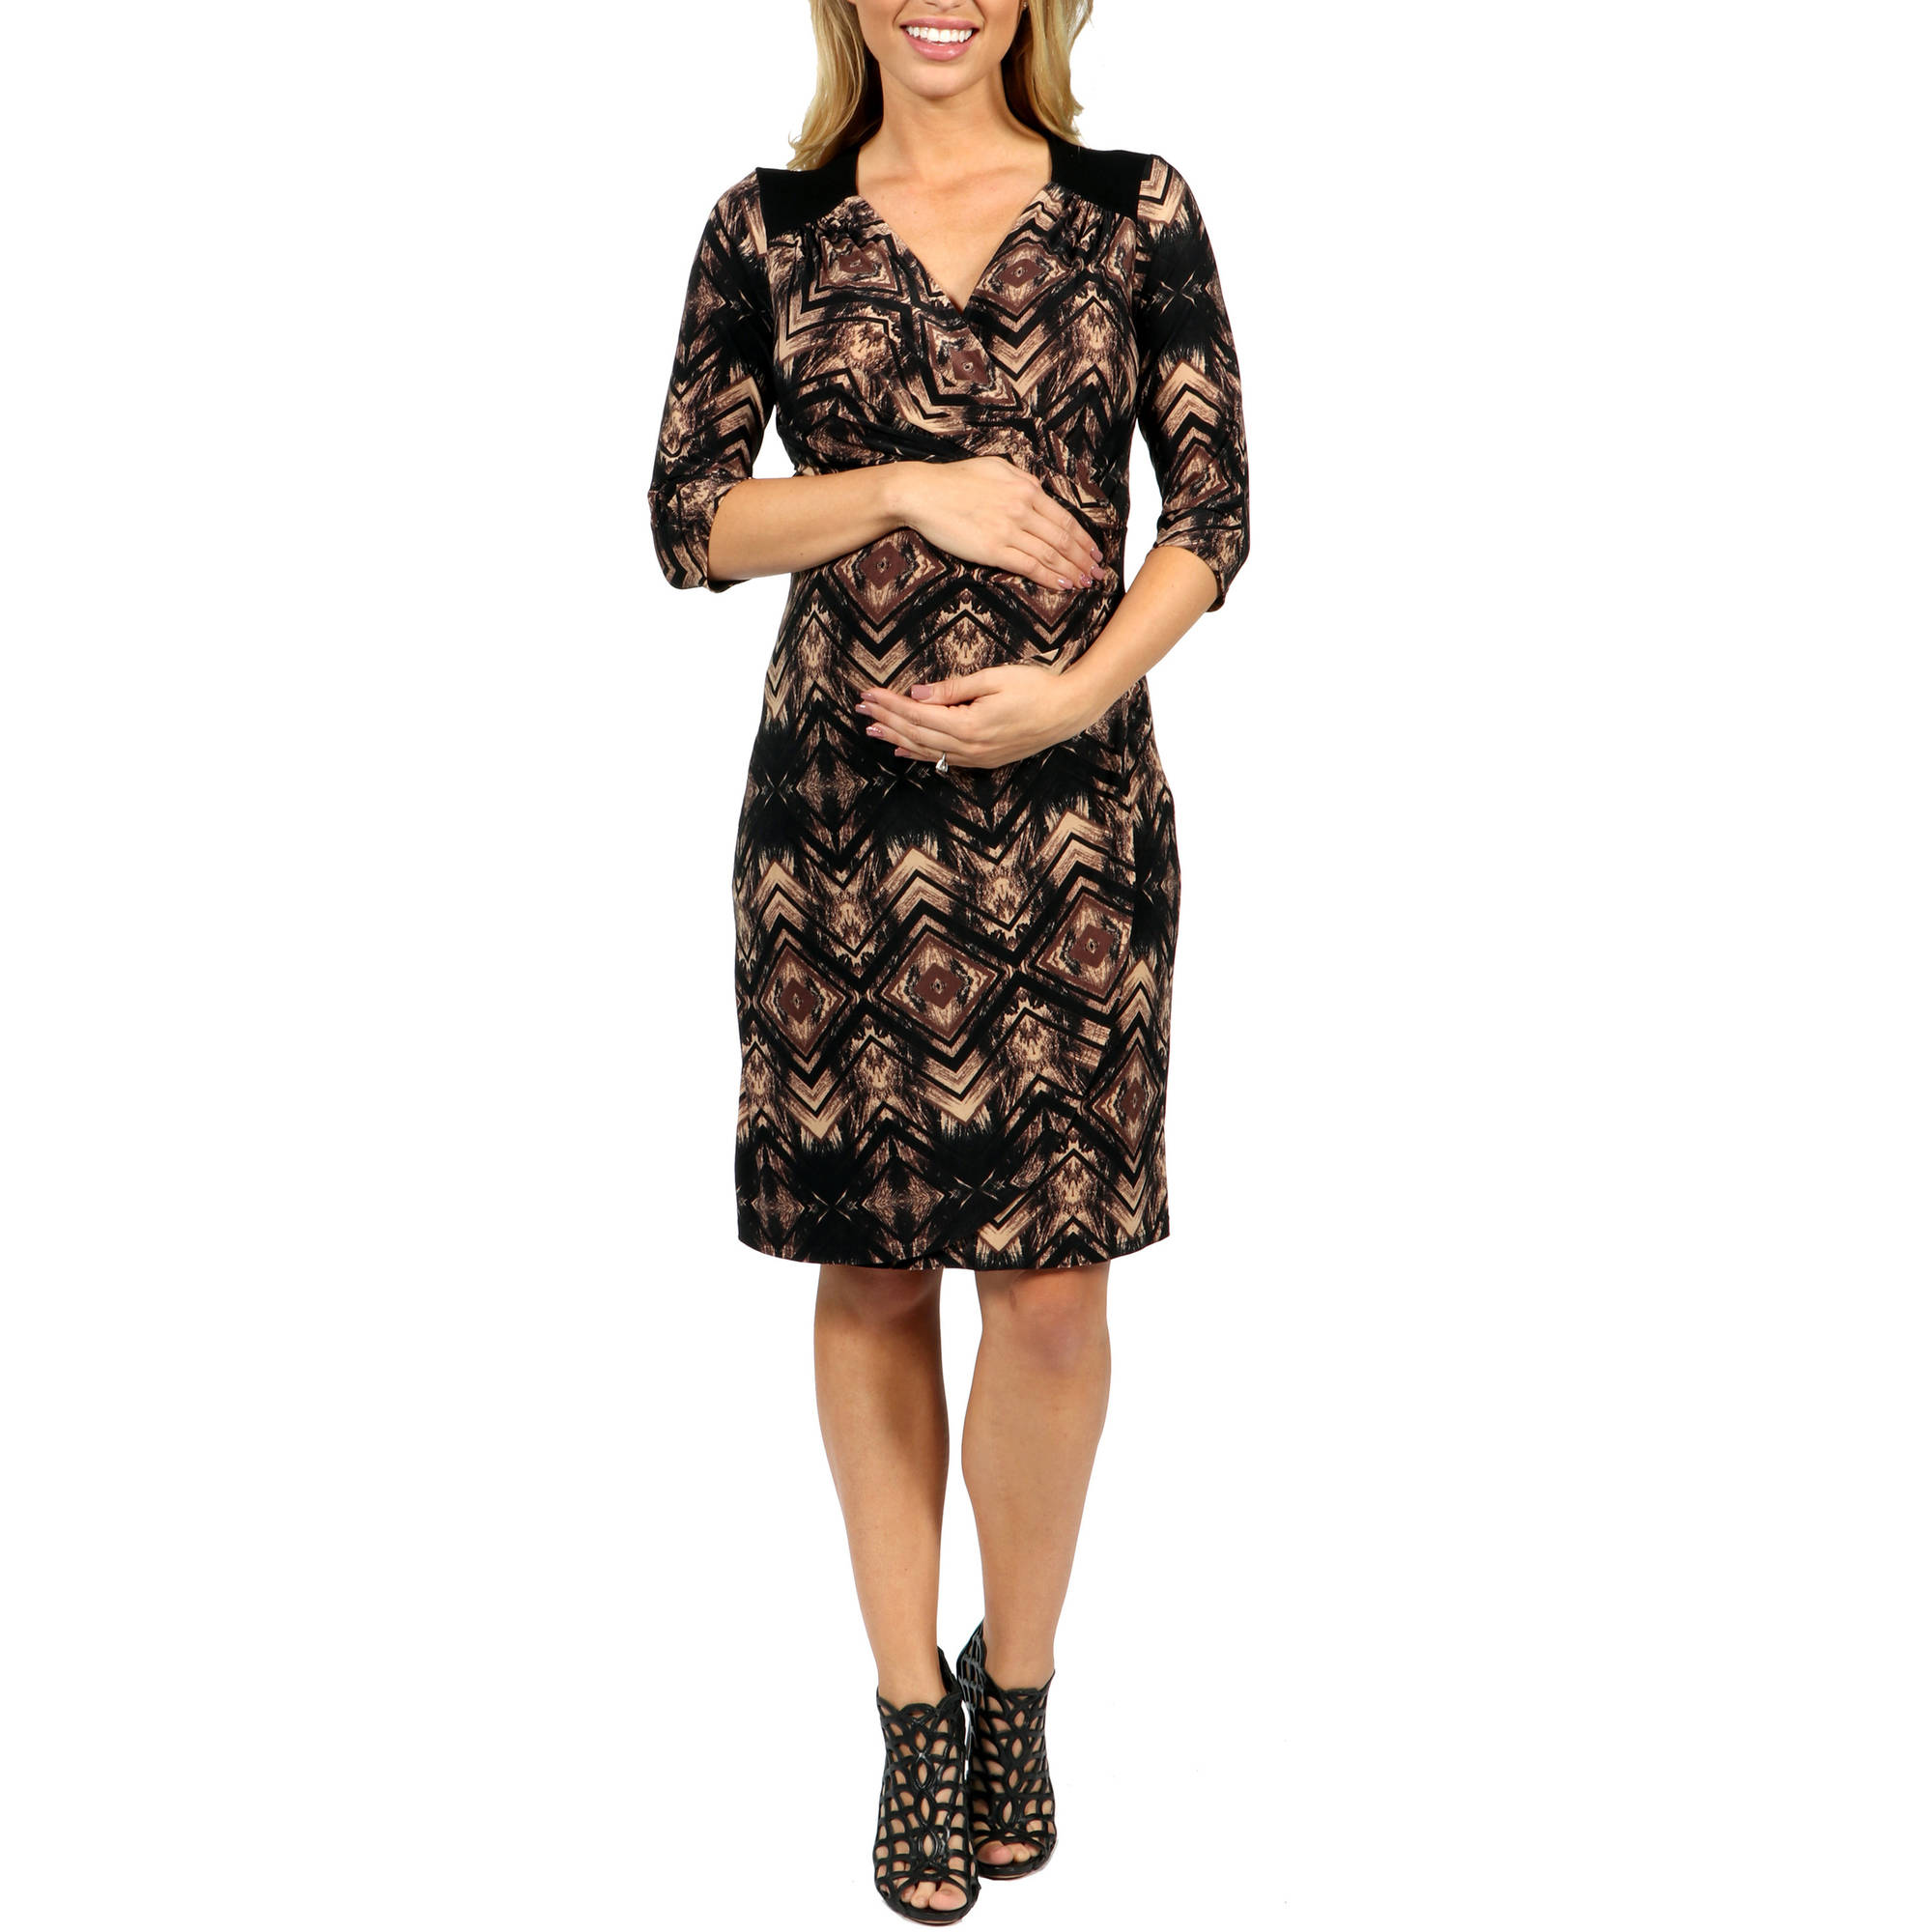 24/7 Comfort Apparel Unforgettable First Impression Maternity Faux Wrap Dress